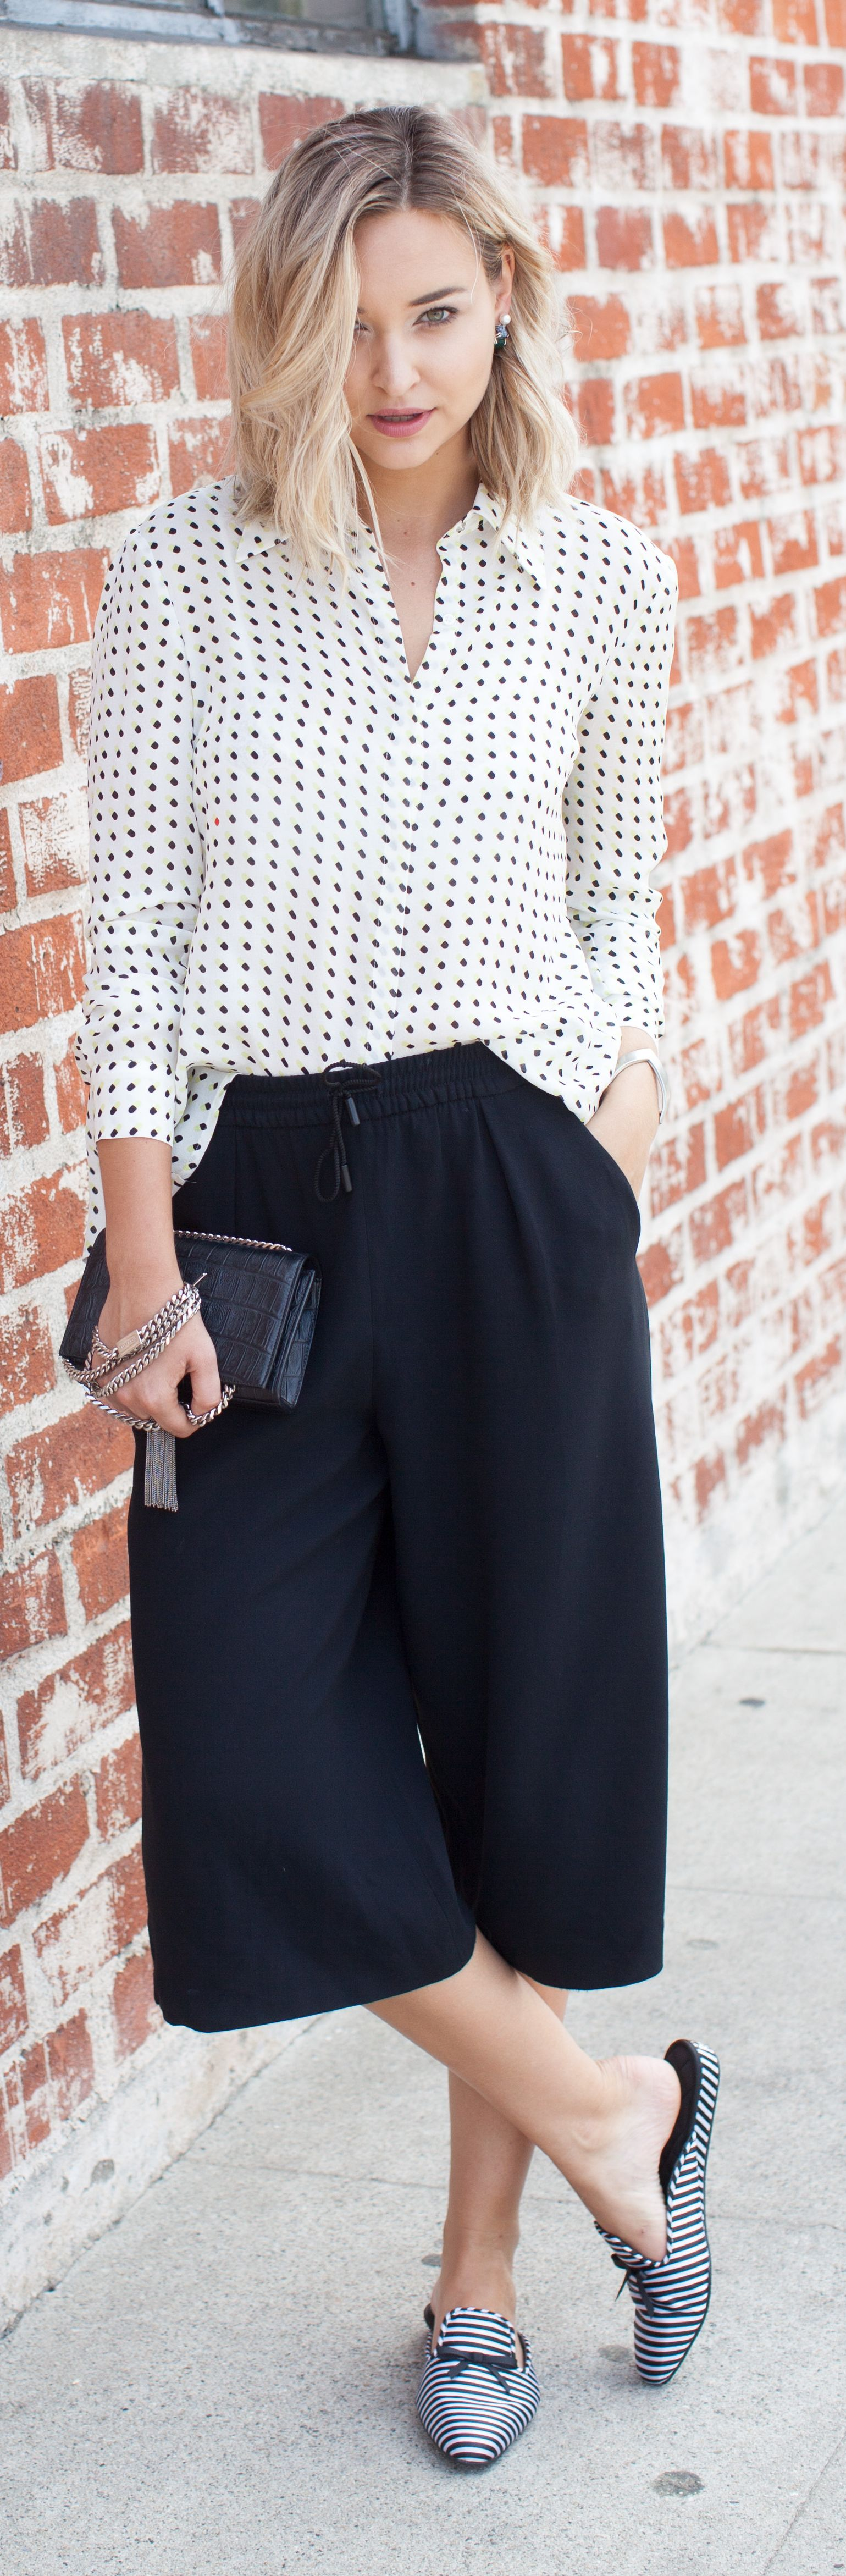 Polka Dot Shirt Black Culottes by Late Afternoon